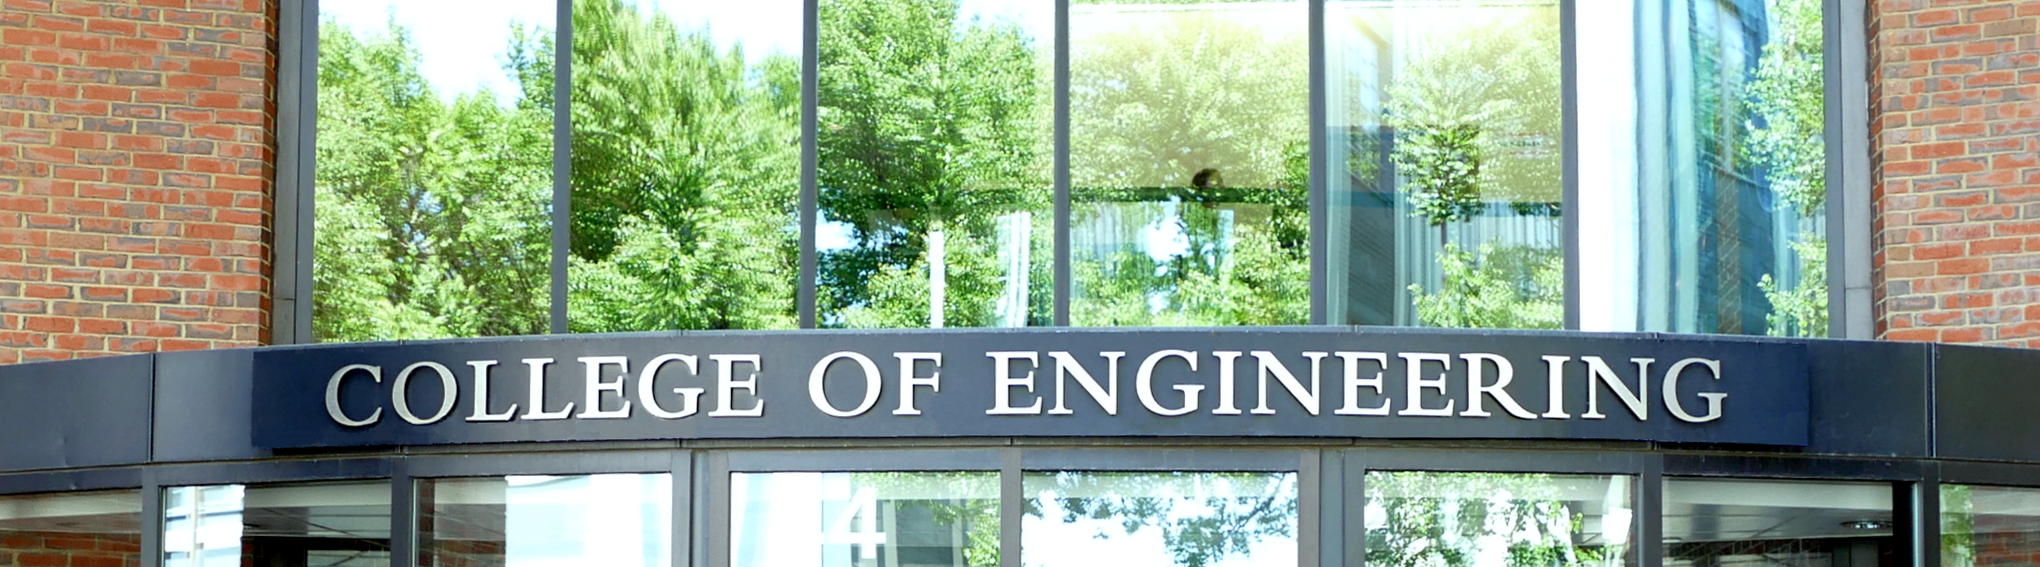 Transfer to BU College of Engineering | College of Engineering